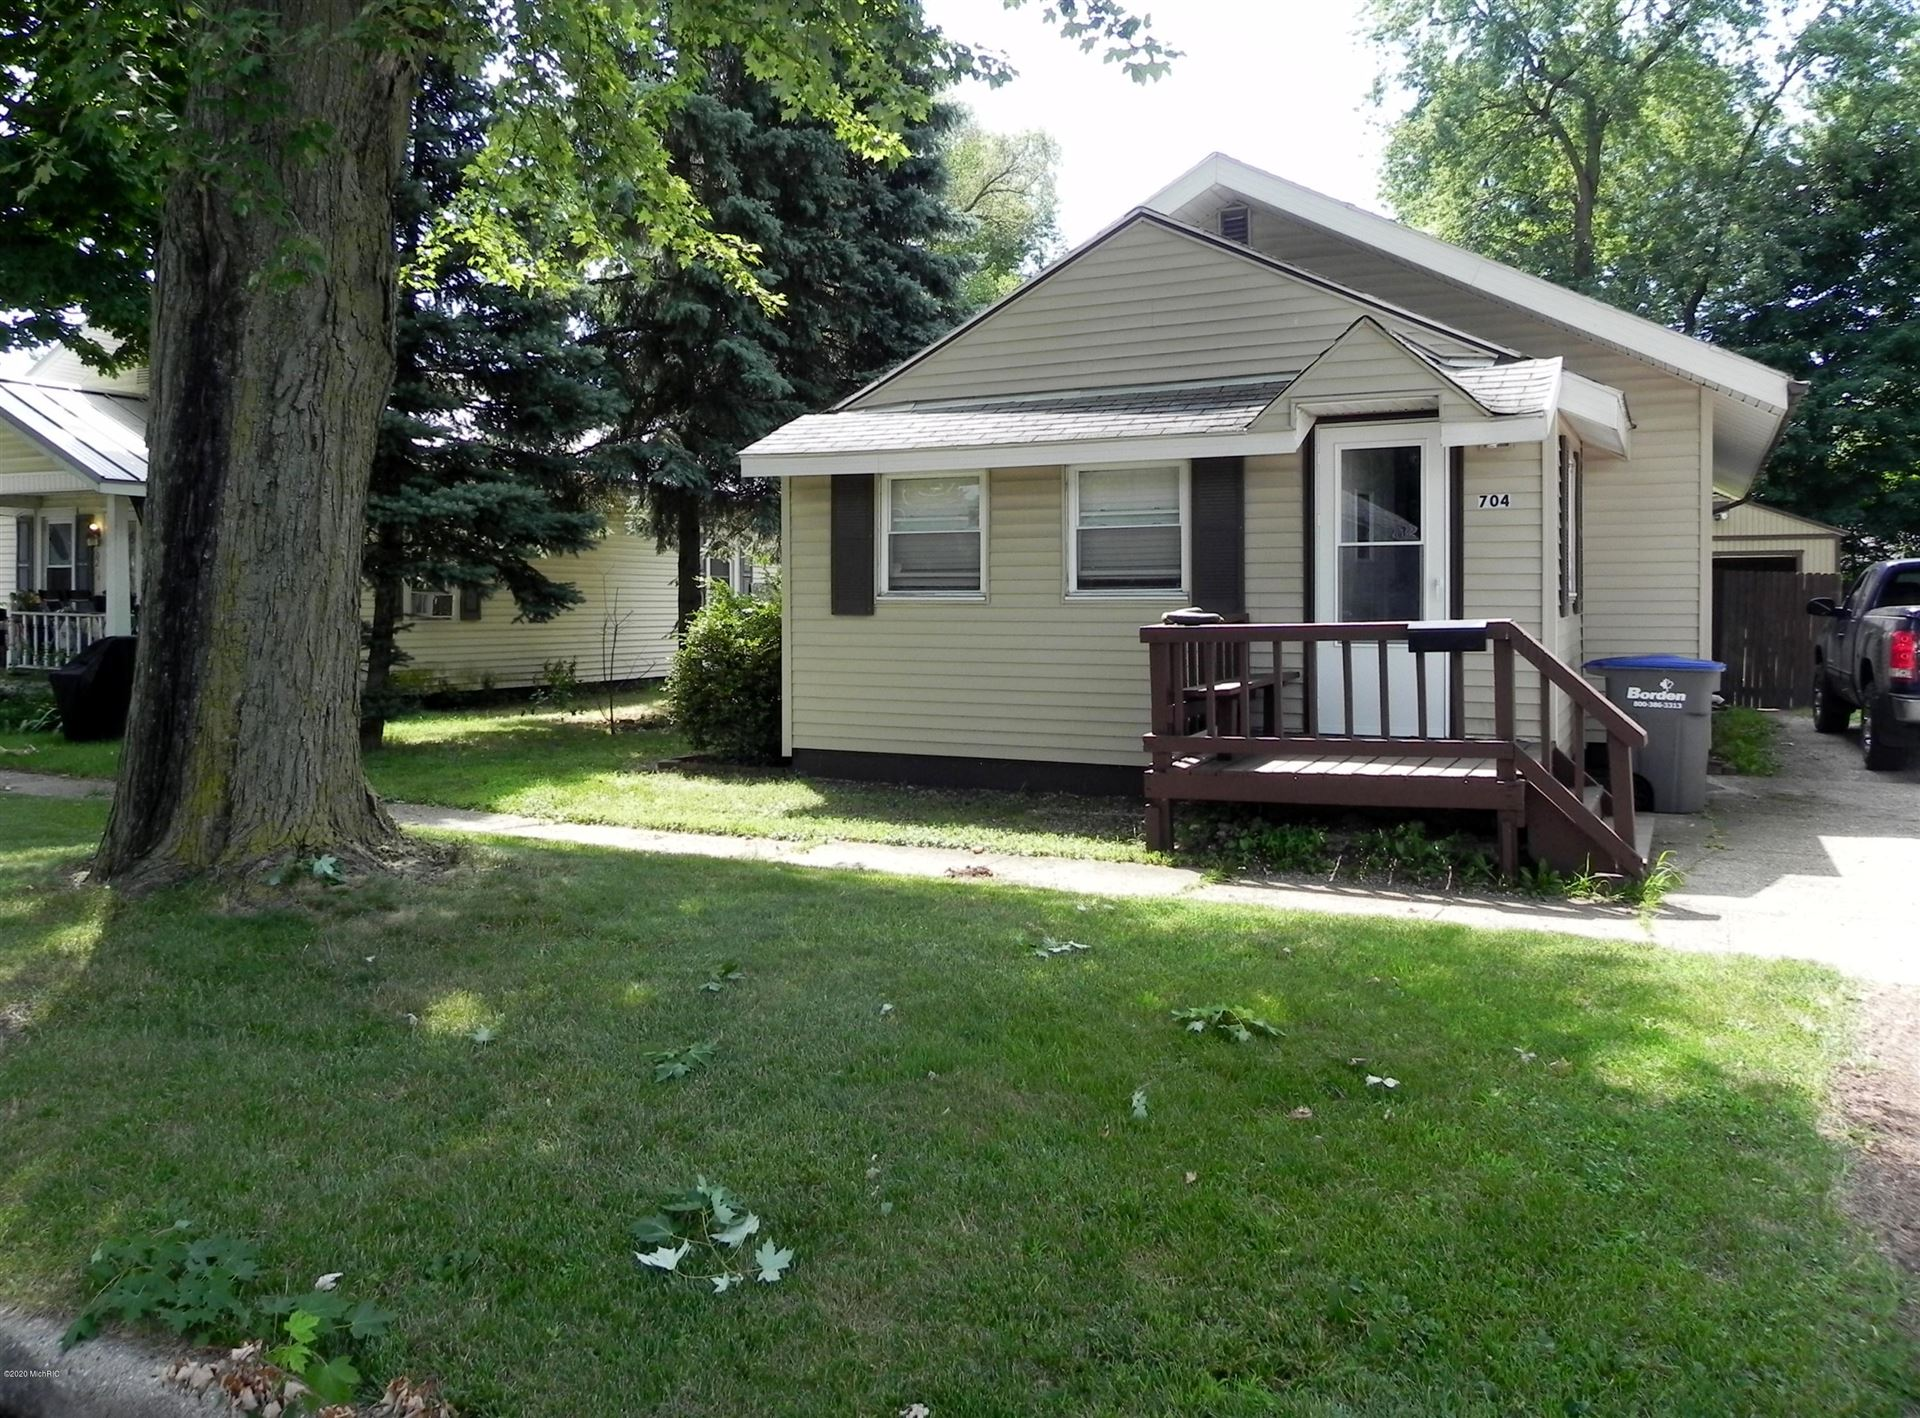 704 Enterprise Street, Sturgis, MI 49091 - MLS#: 20029368